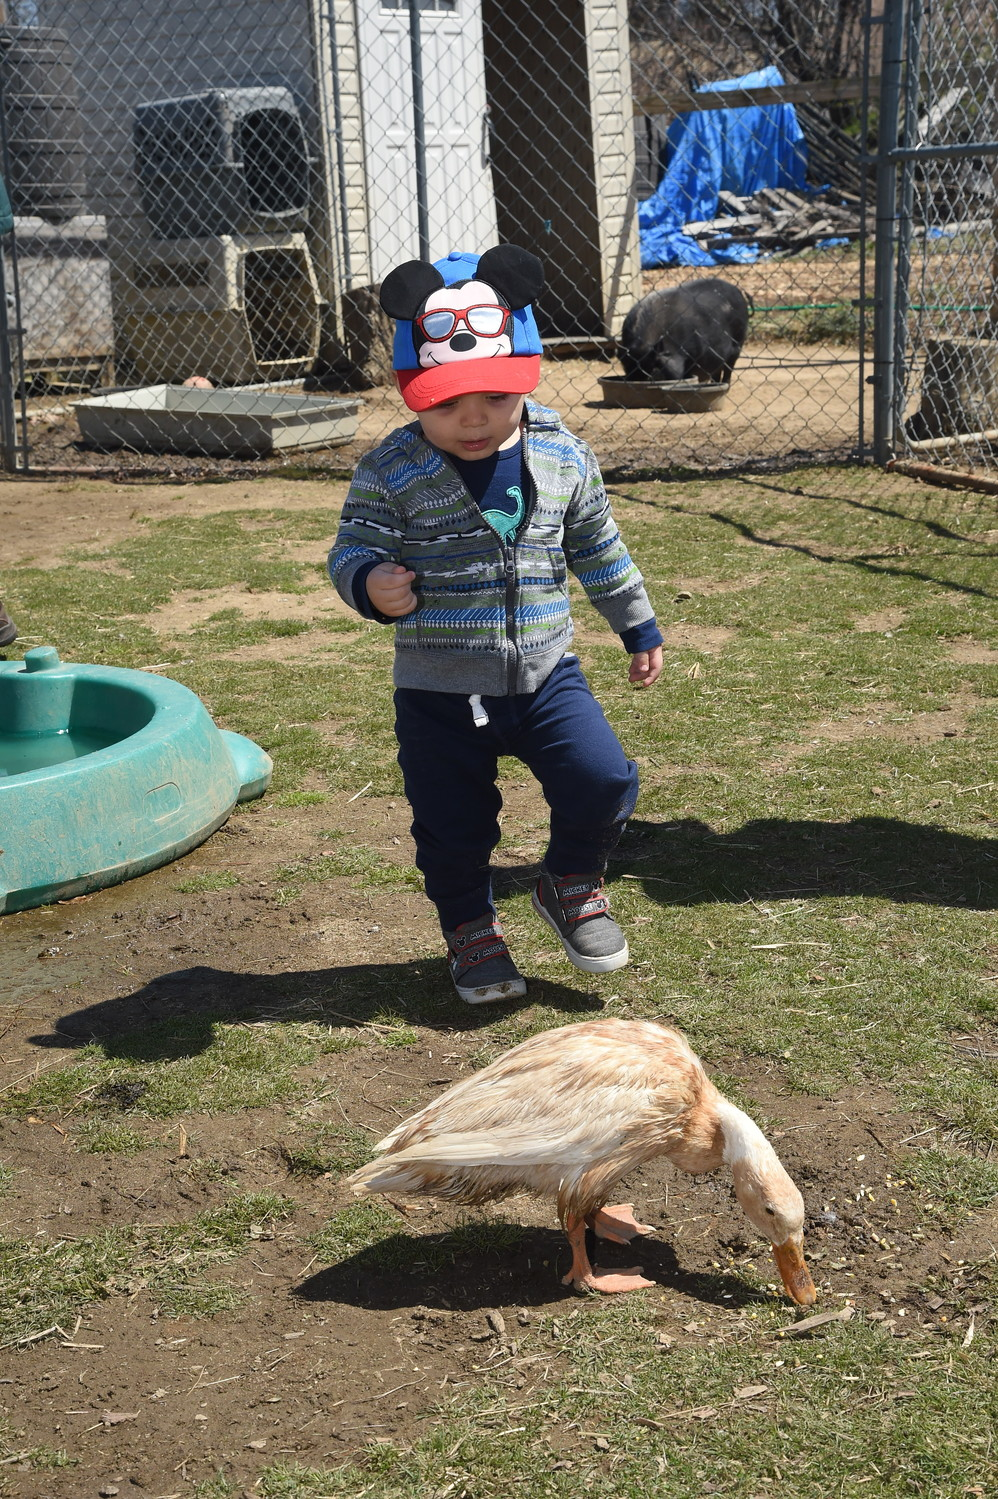 One-year-old Liam Pereira fed the duck at the farm's petting zoo.